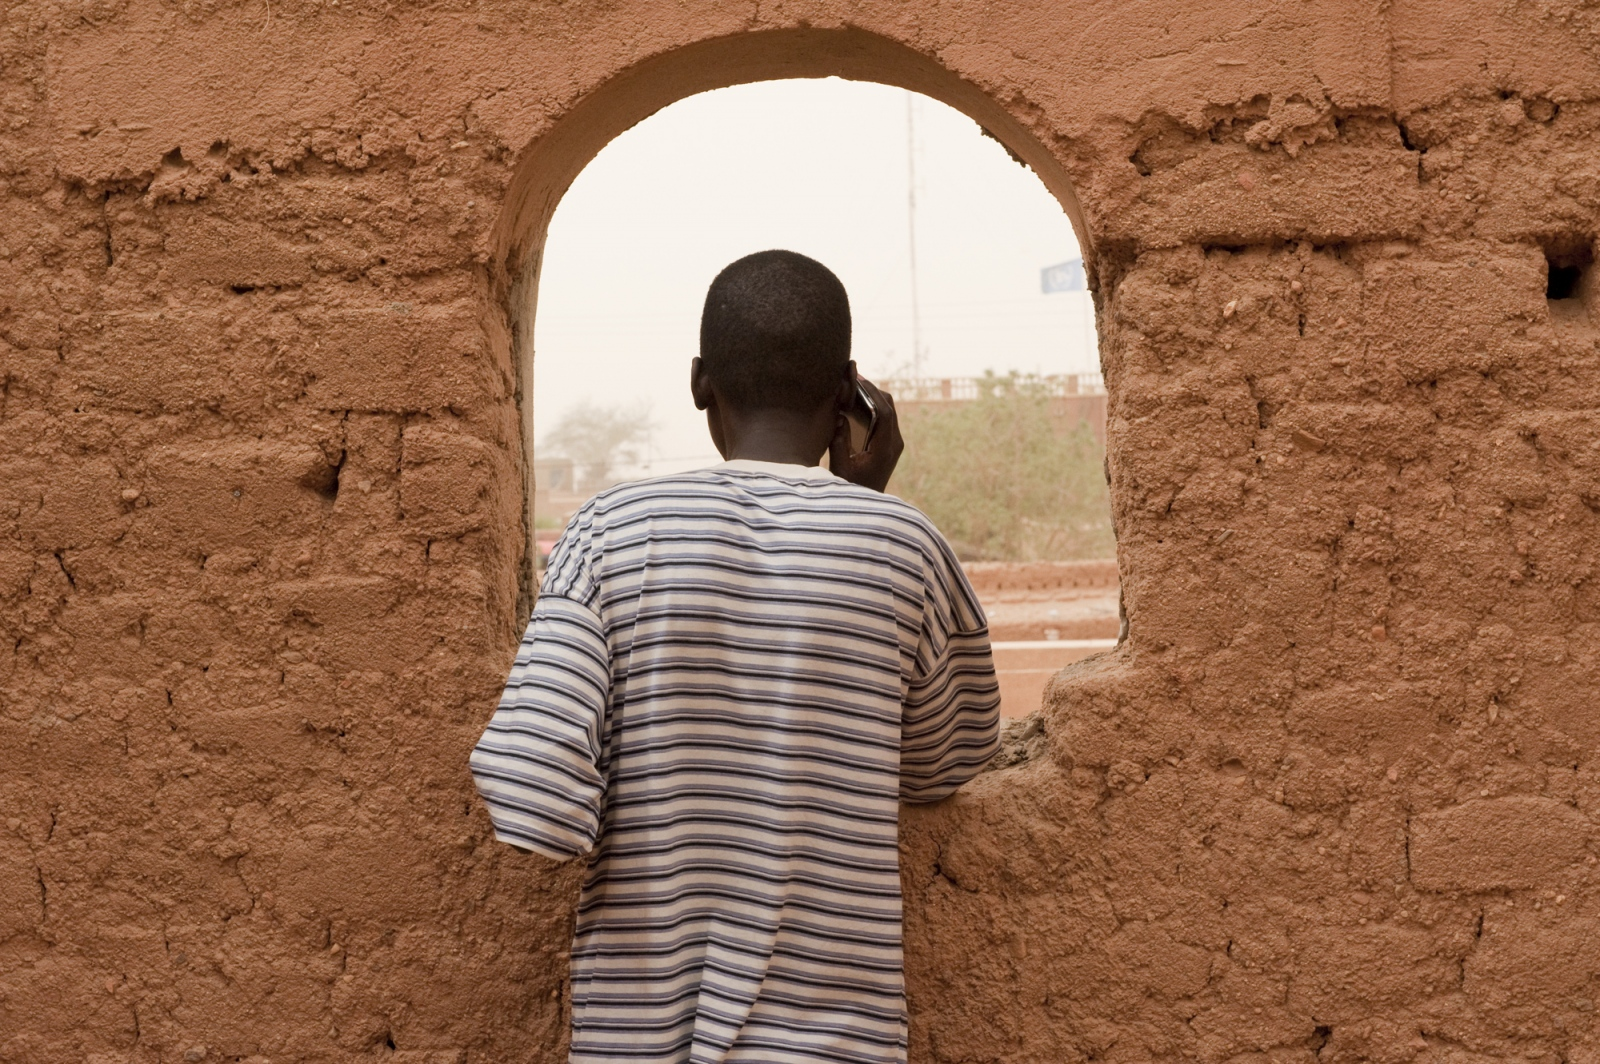 Art and Documentary Photography - Loading refugee_africa_beilvert_niger_2.jpg